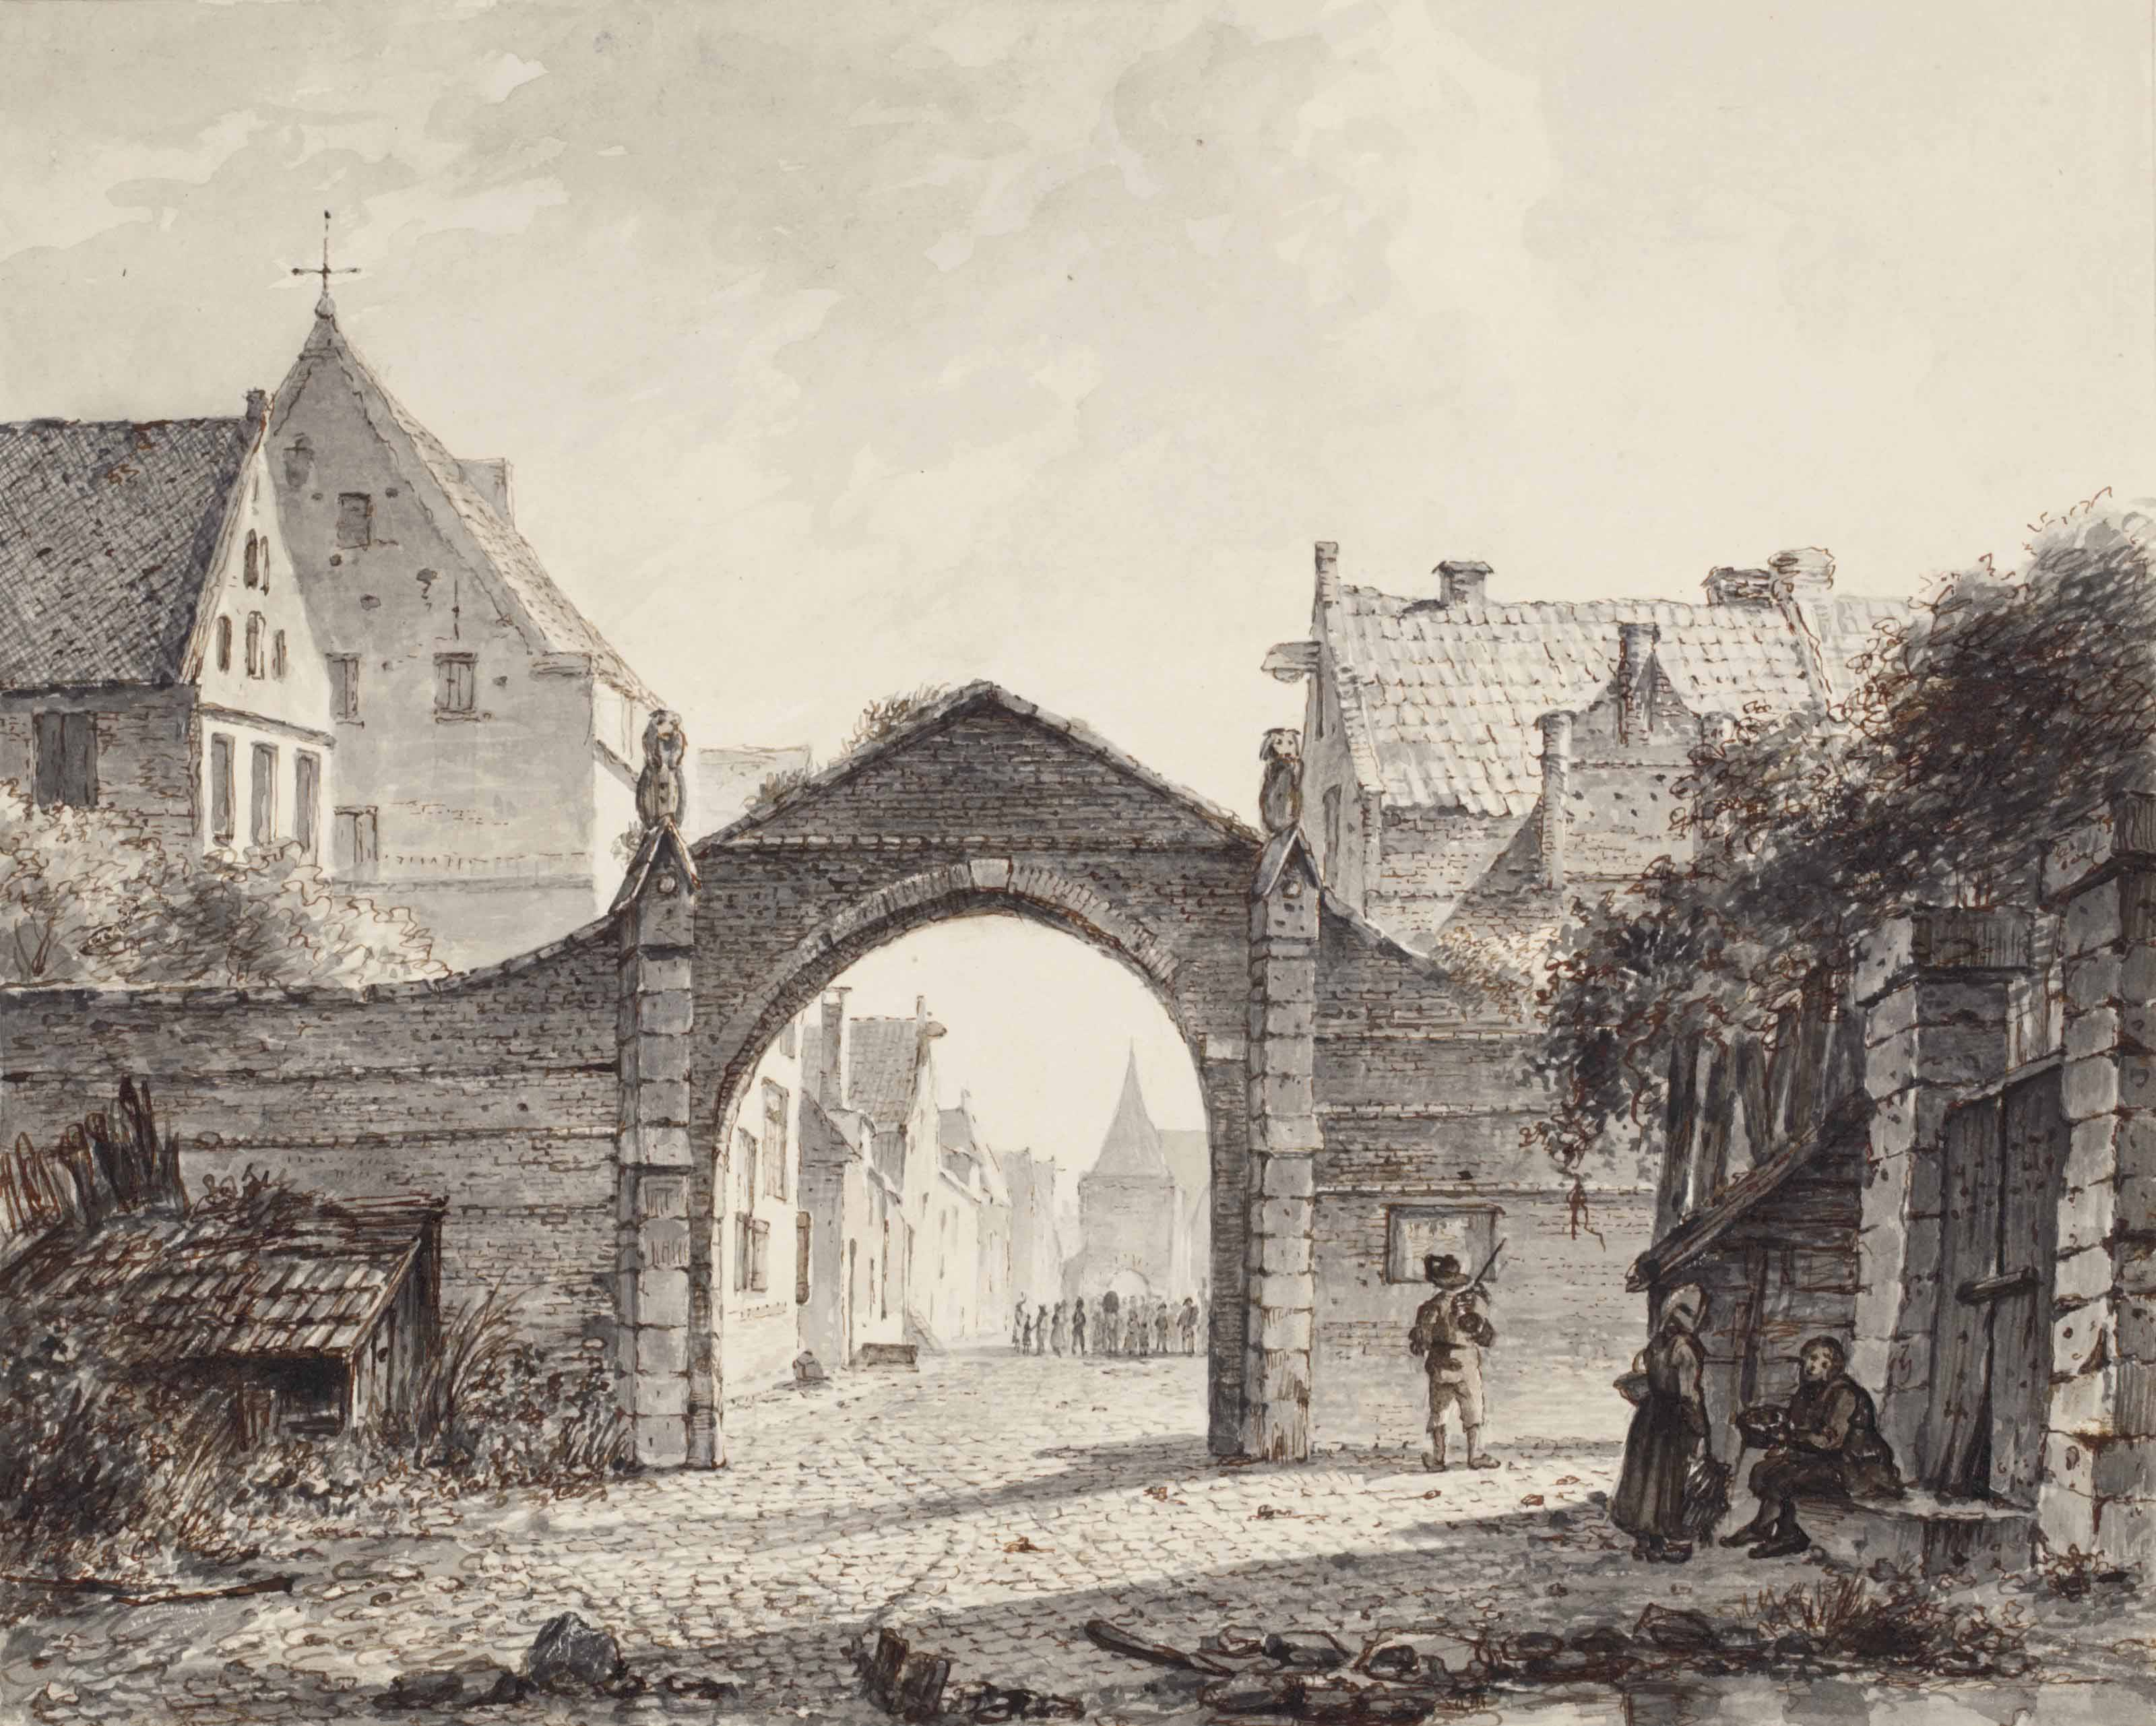 A gateway with a view of a town beyond